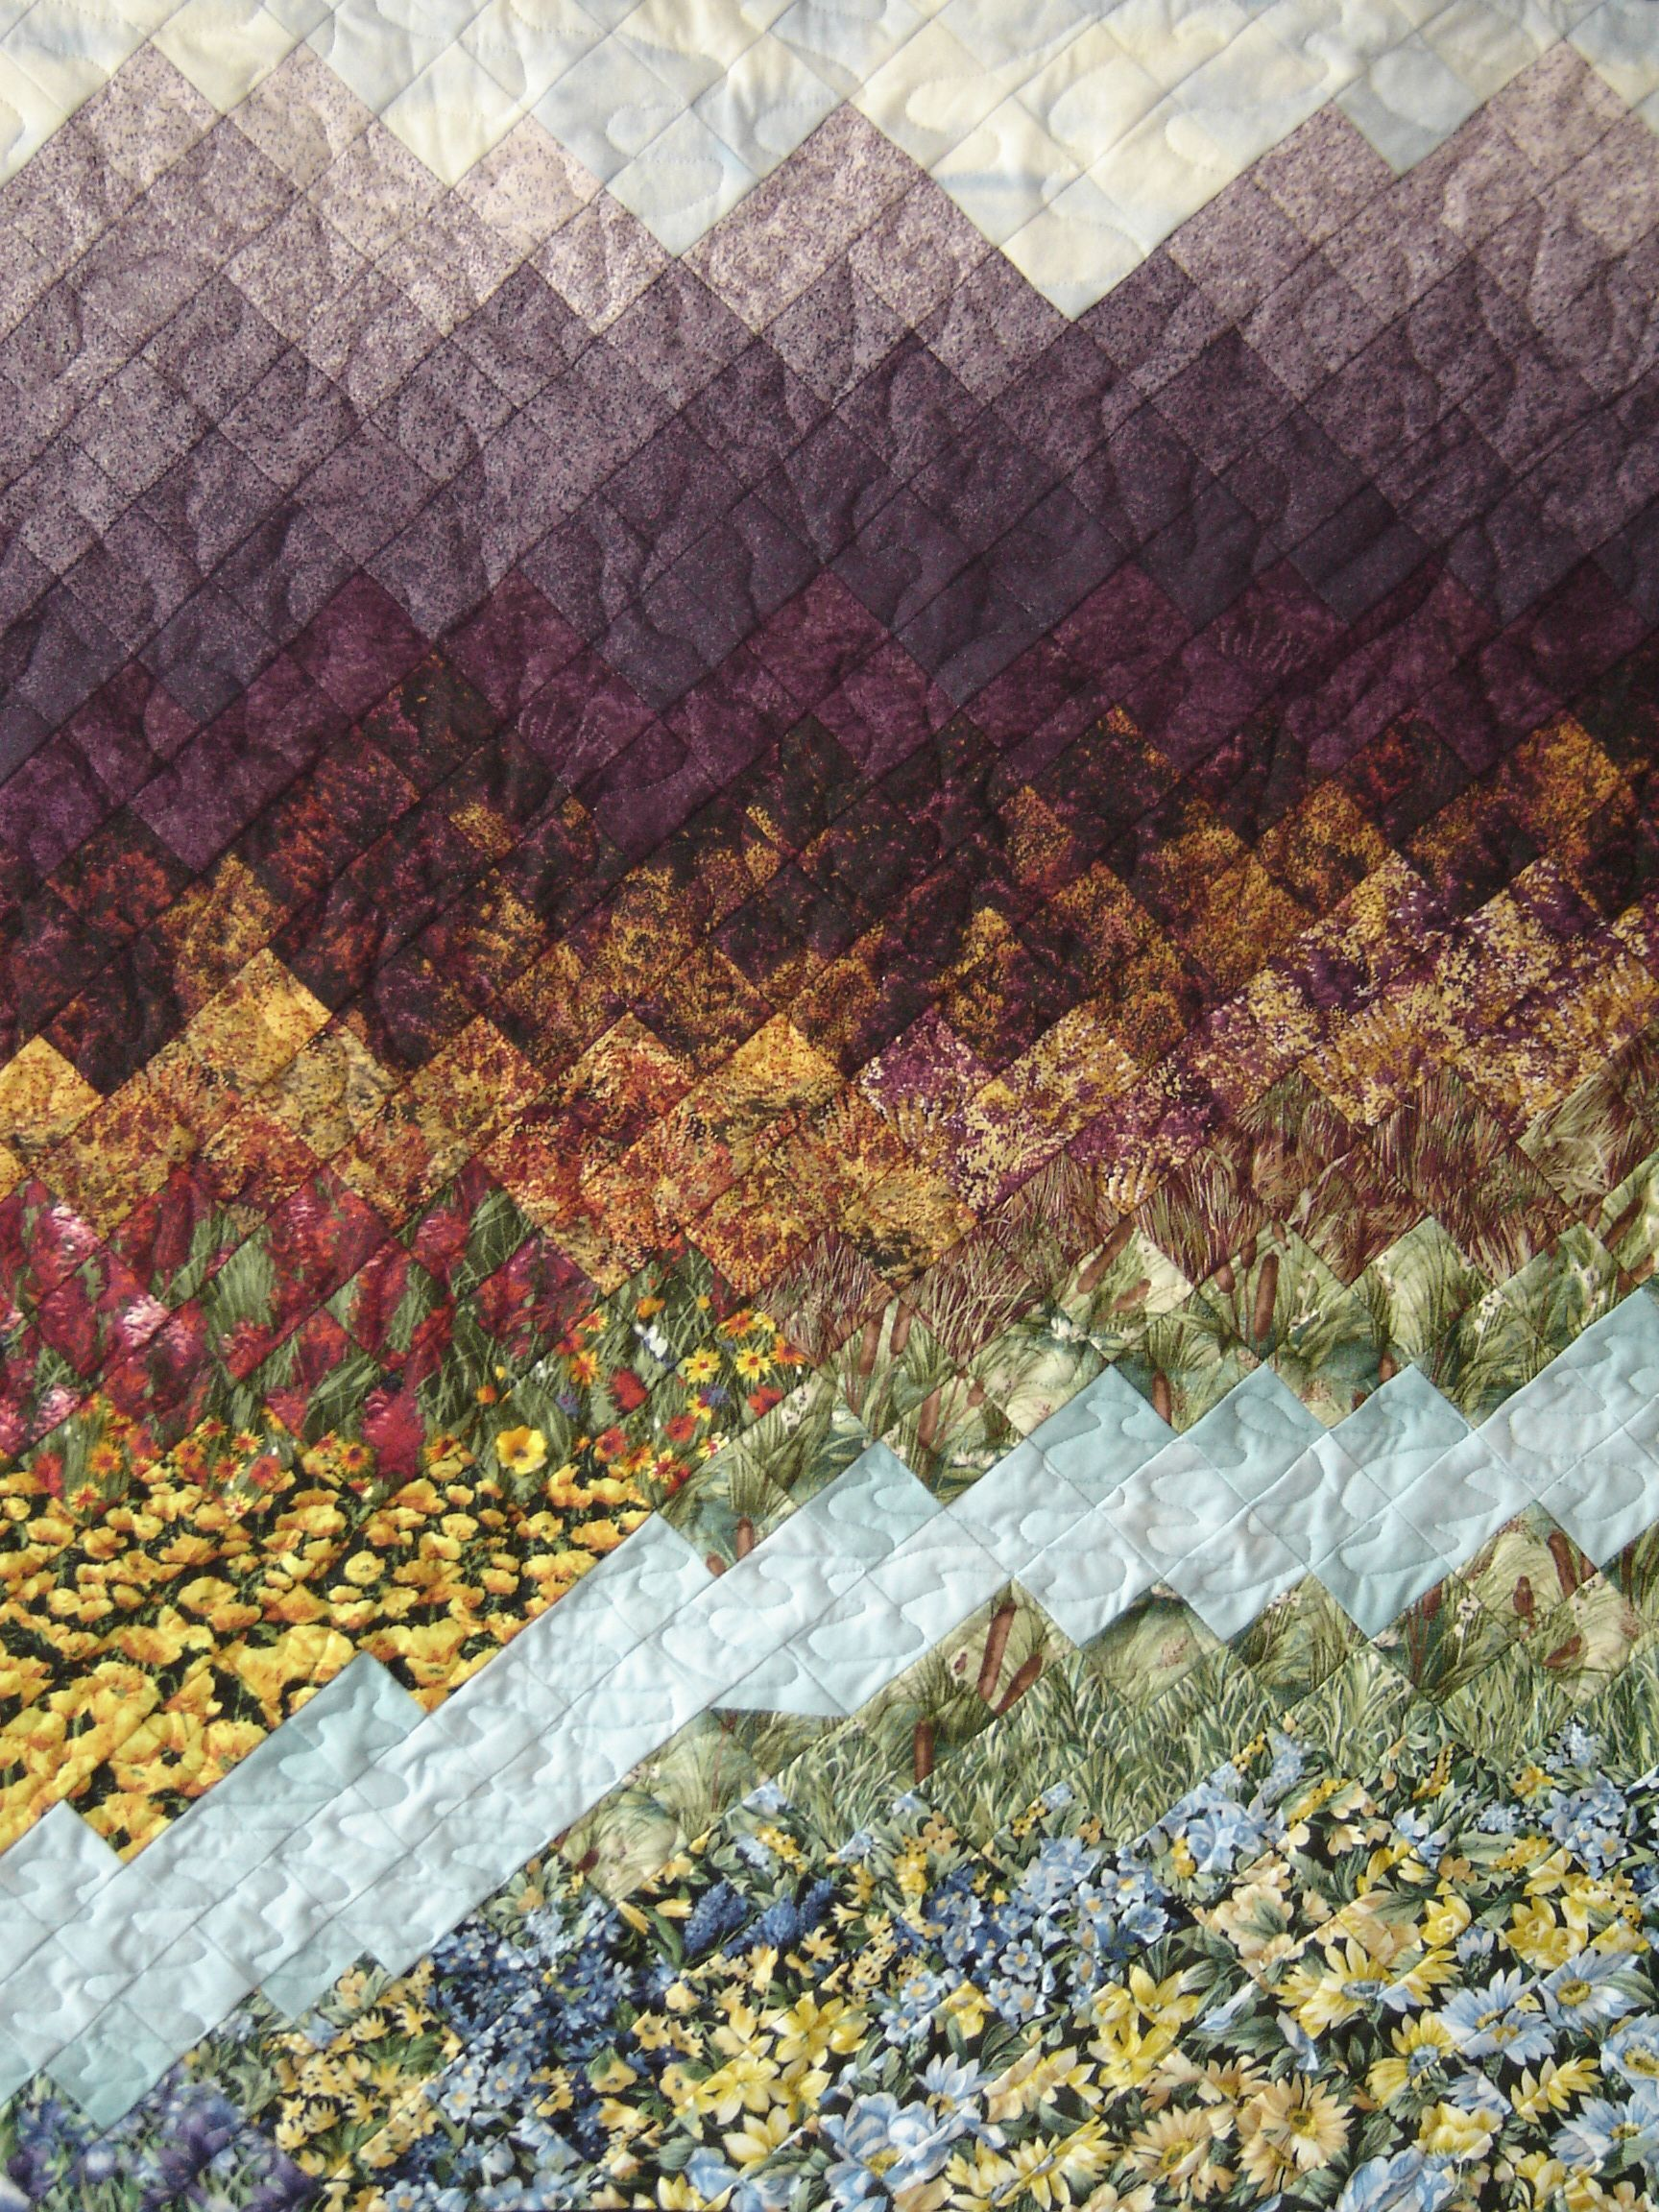 Wow Watercolor Effect With A Lovely Quilt Design This Landscape